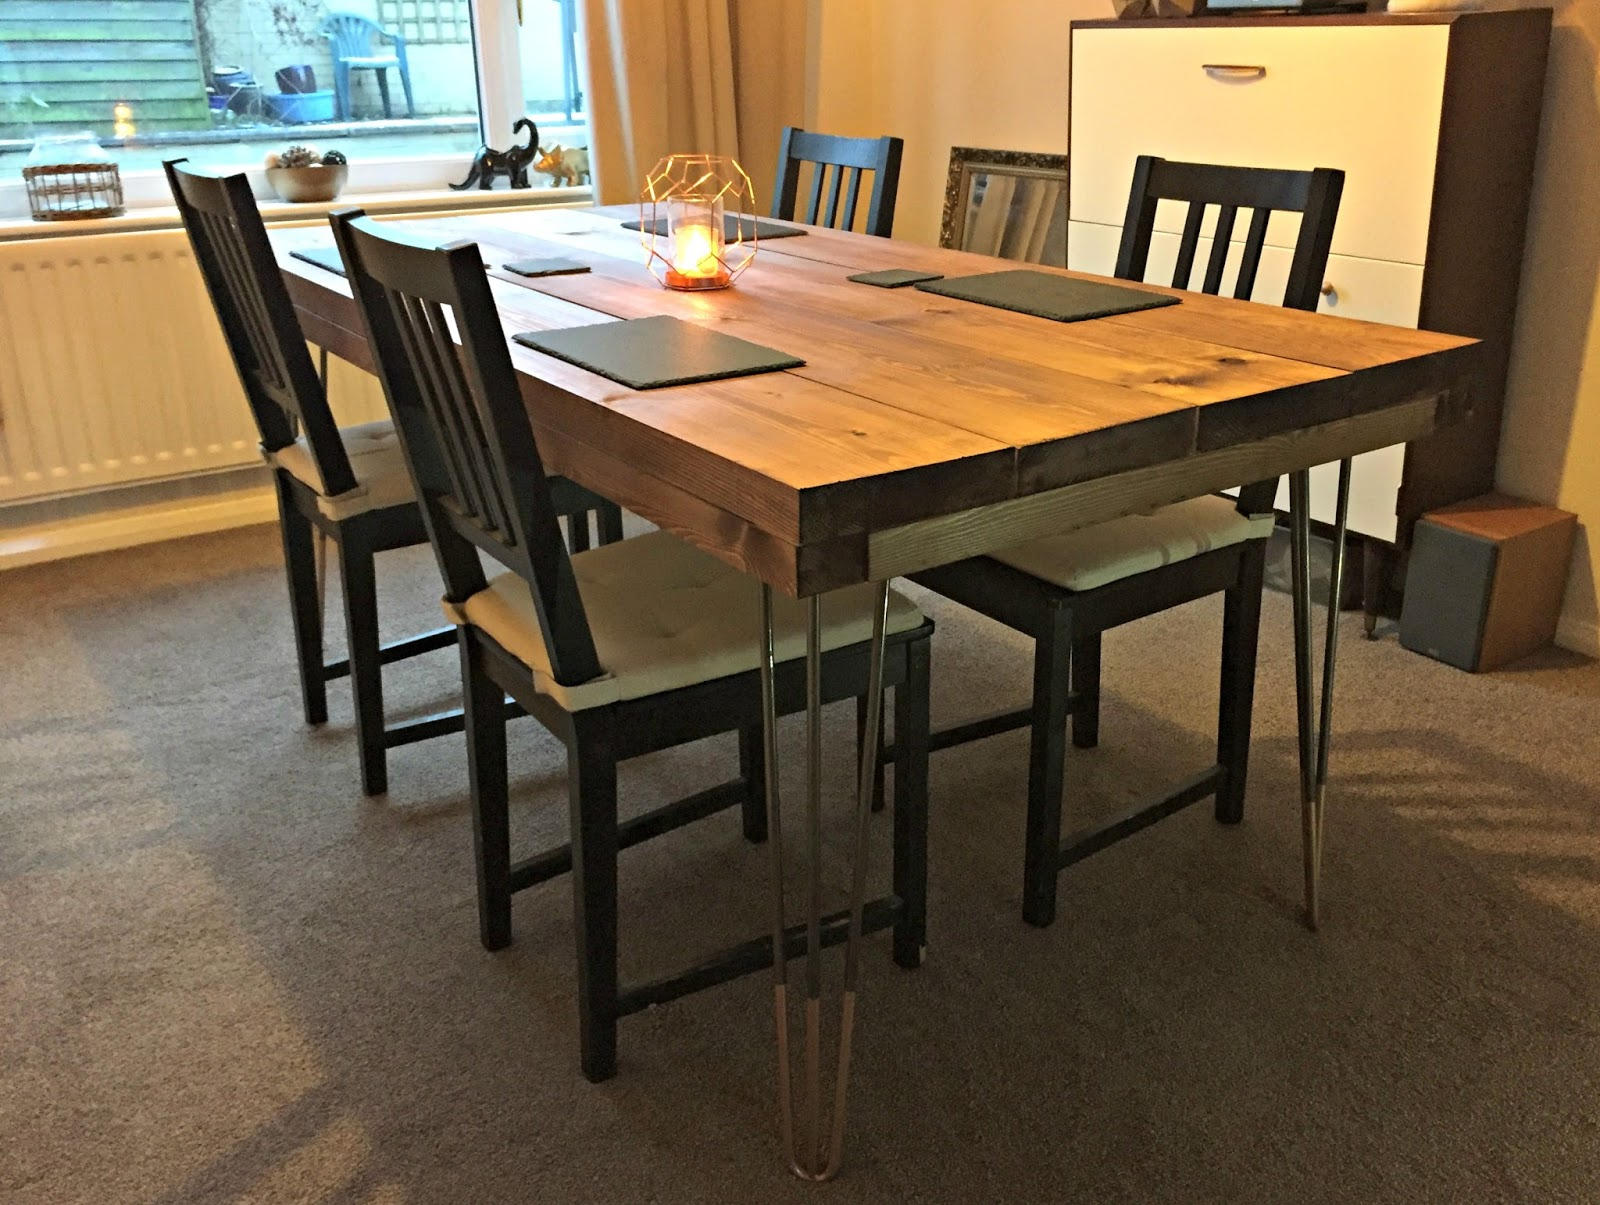 Diy Tutorial Rustic Dining Table With Hairpin Legs Tea